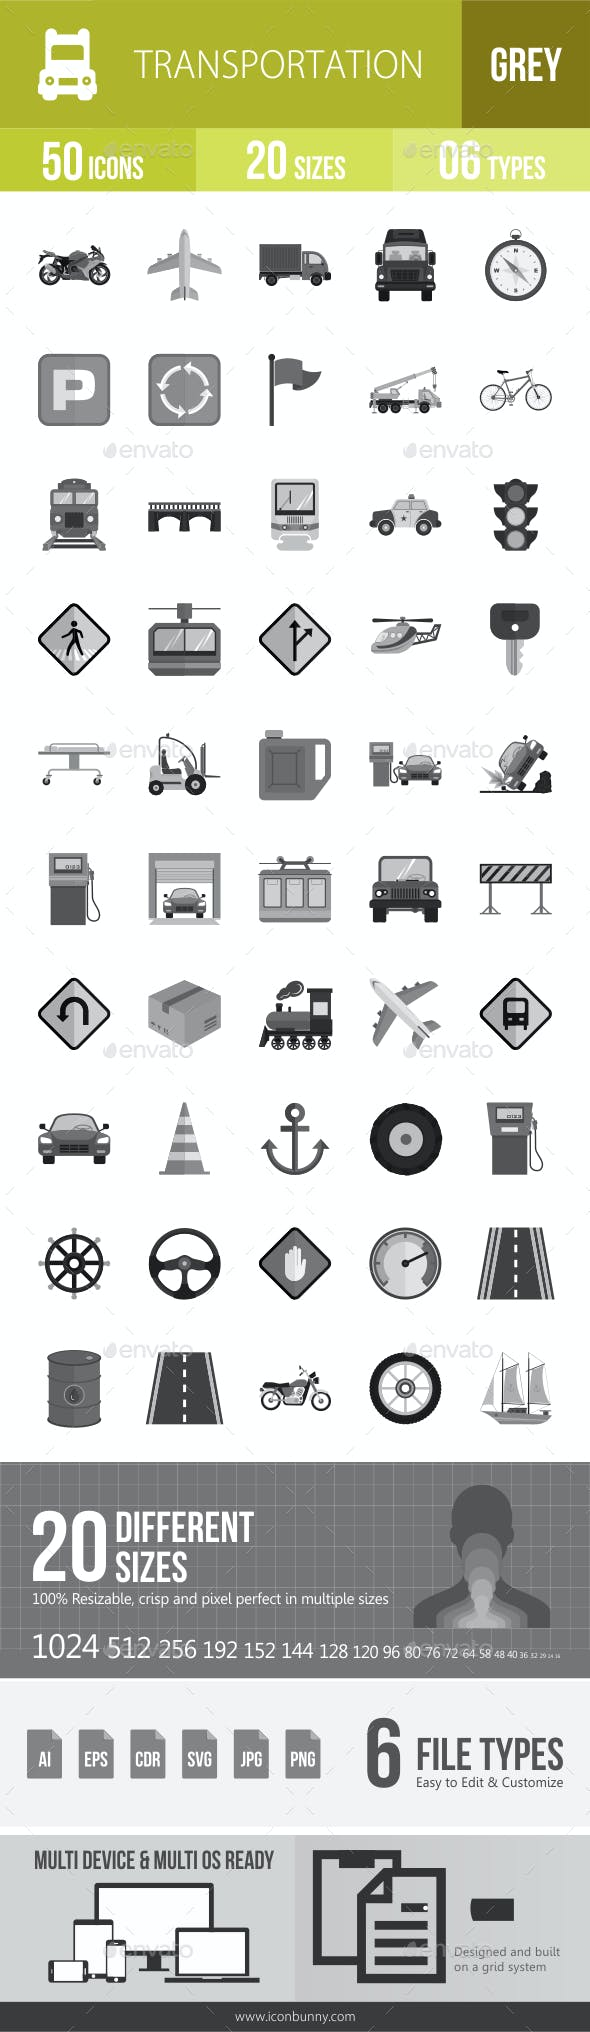 50 Transportation Grey Scale Icons